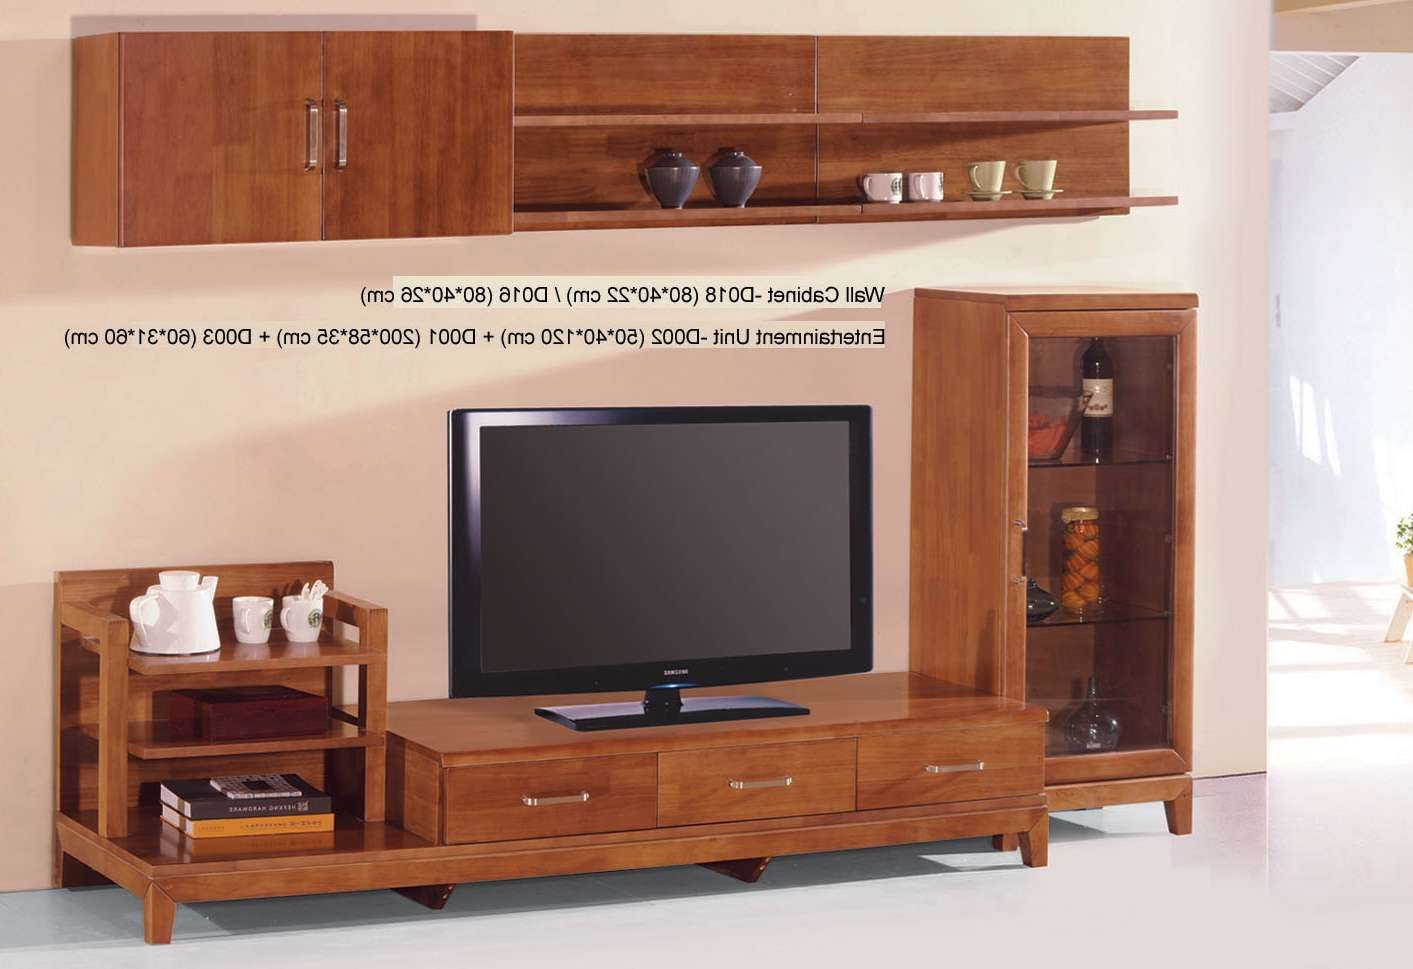 Country Style Tv Stand Unit Idea In Honey Oak Finish With Three With Country Style Tv Cabinets (View 5 of 20)